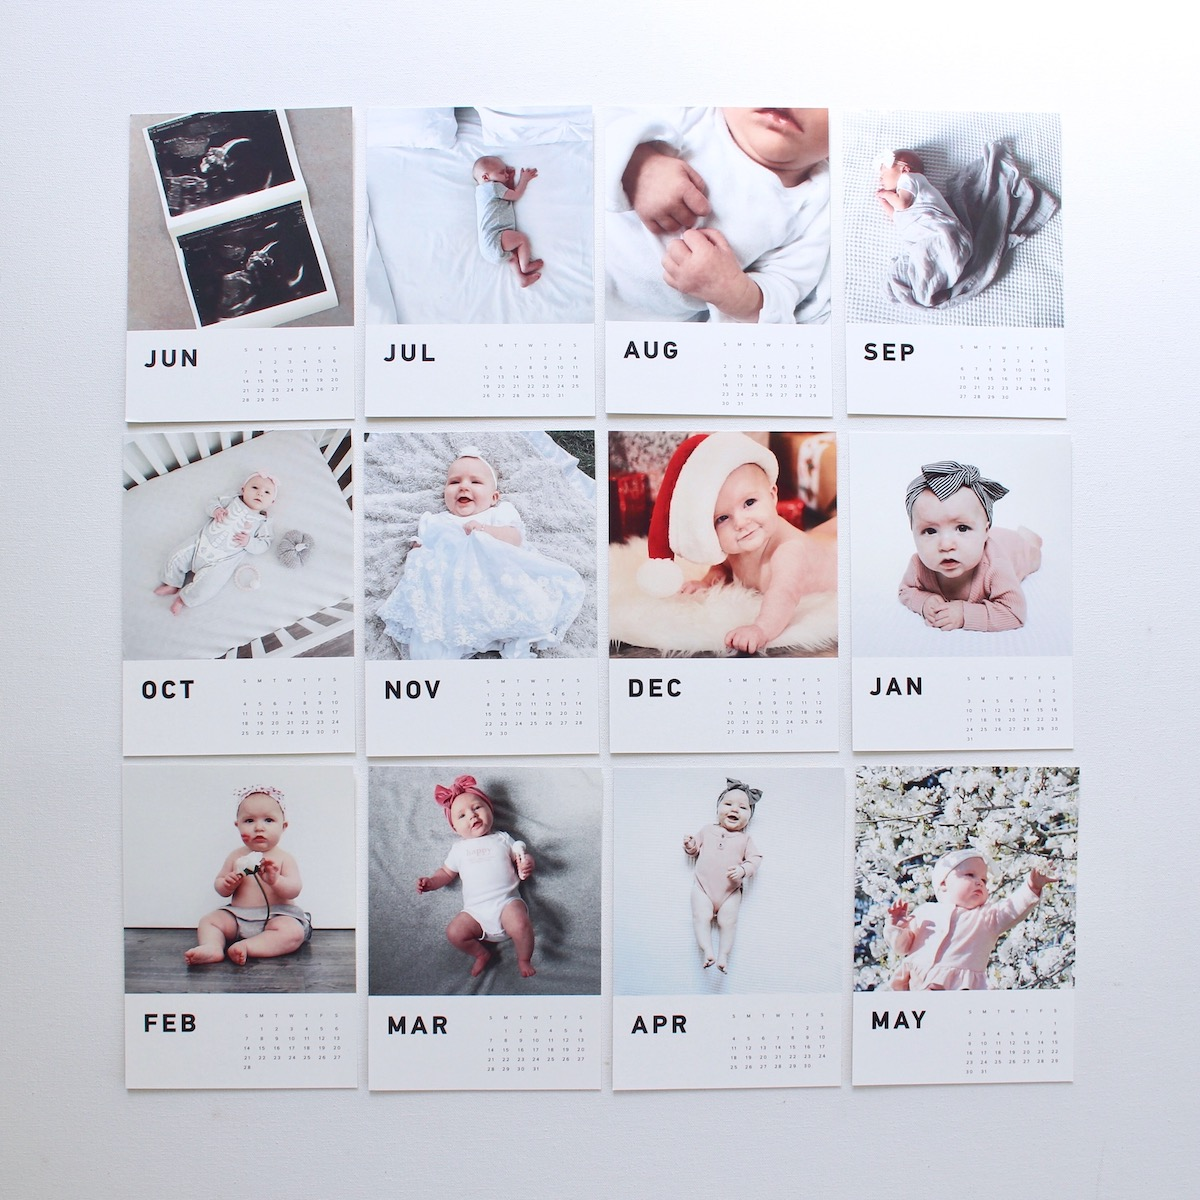 Calendar pages featuring baby photos laid out in grid